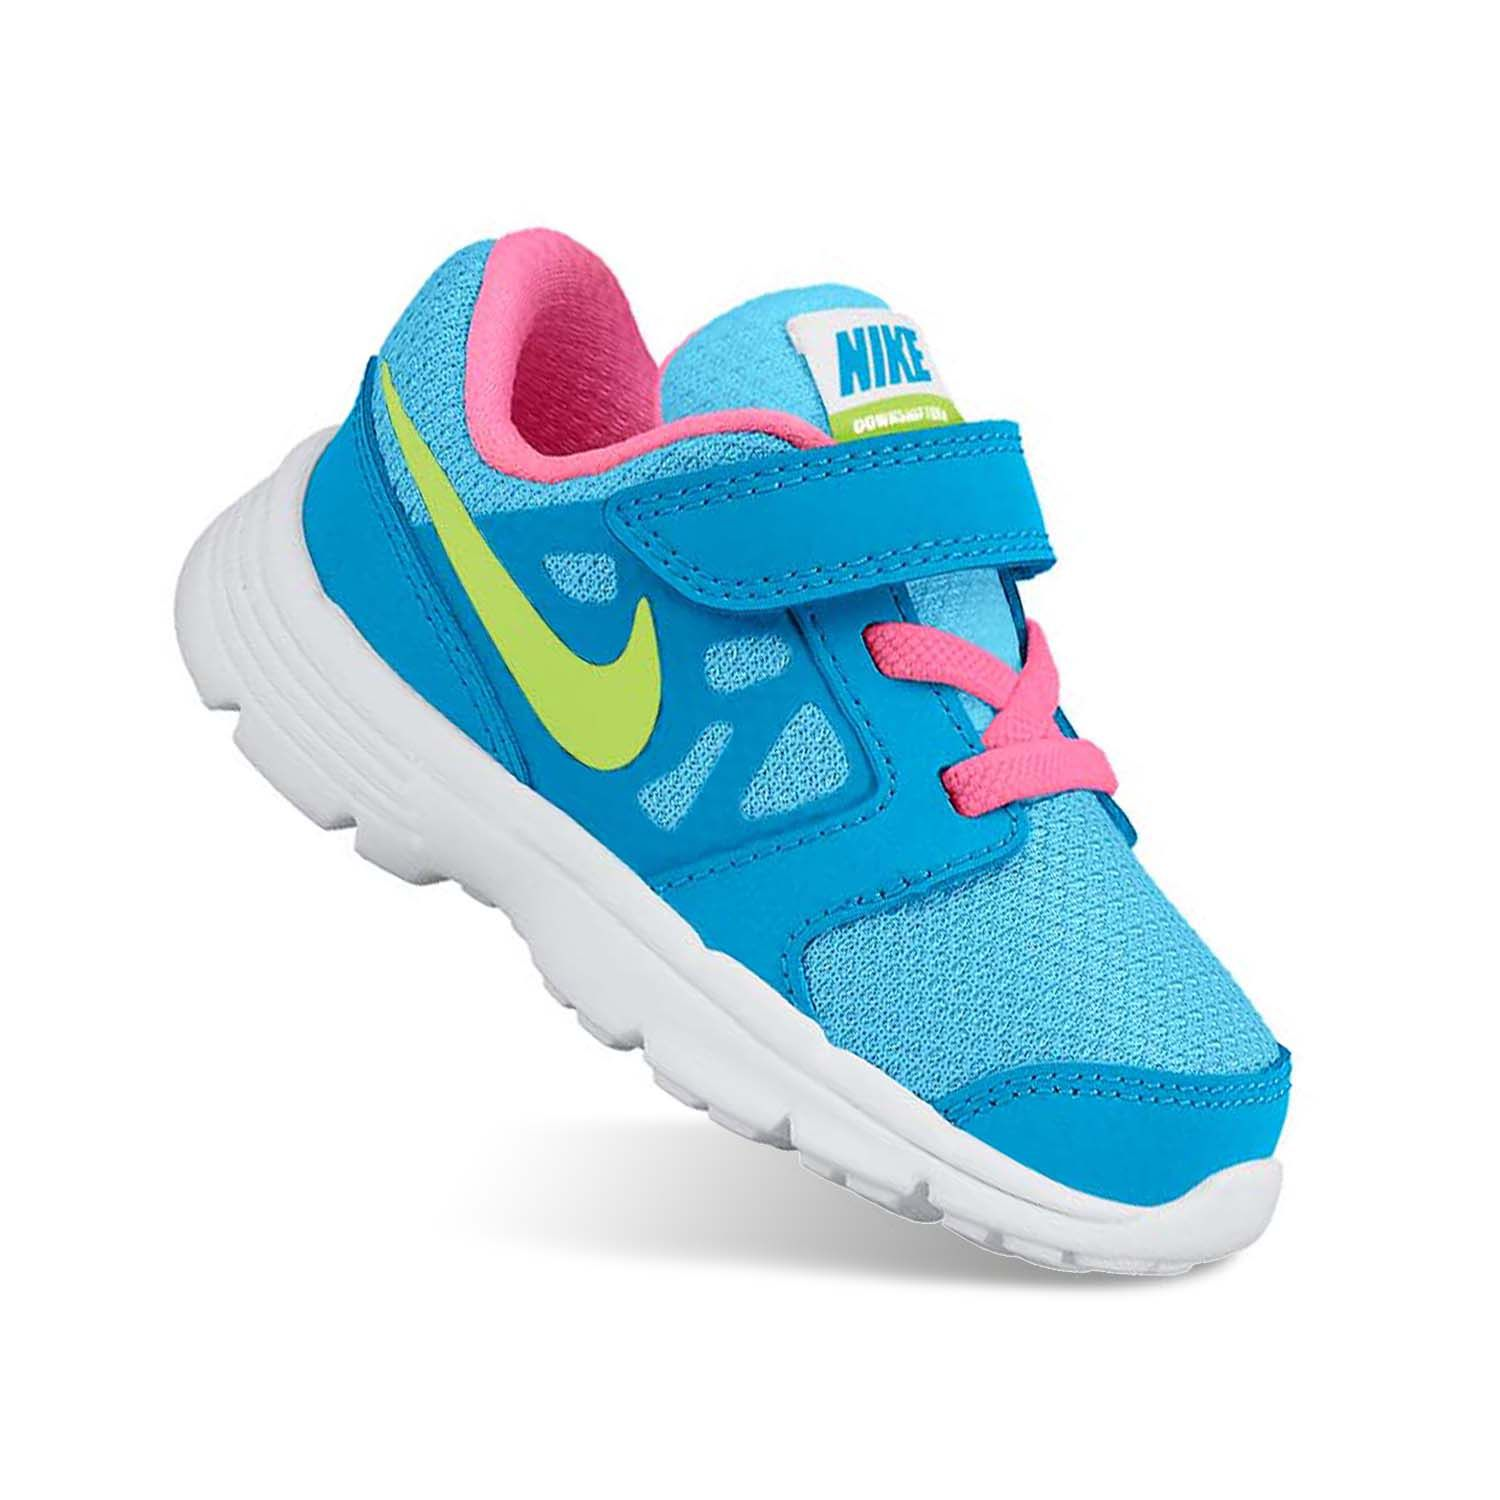 Nike Shoes For Kids Girls Pink